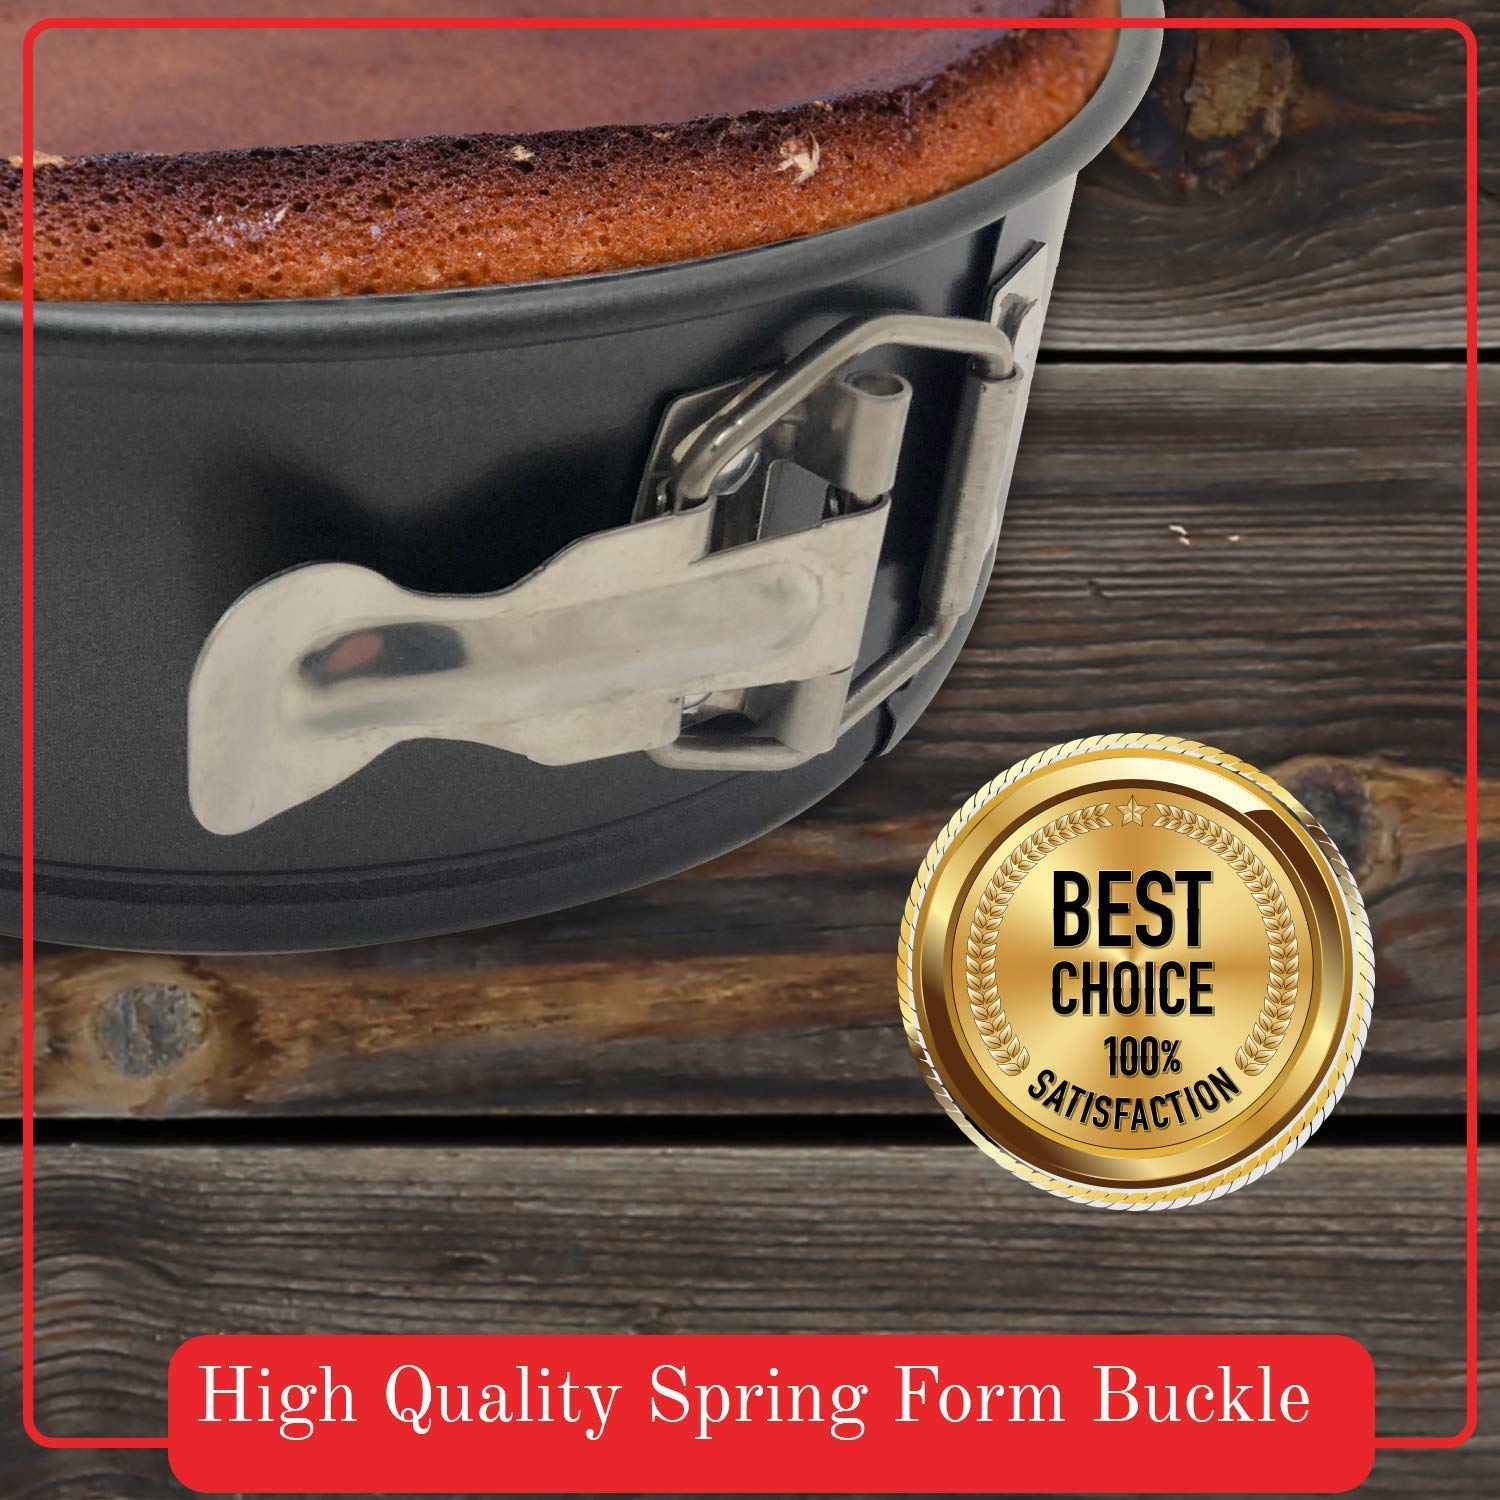 8 inch Quick /& Carry Springform Pan for Instant Pot Electric Pressure Cookers